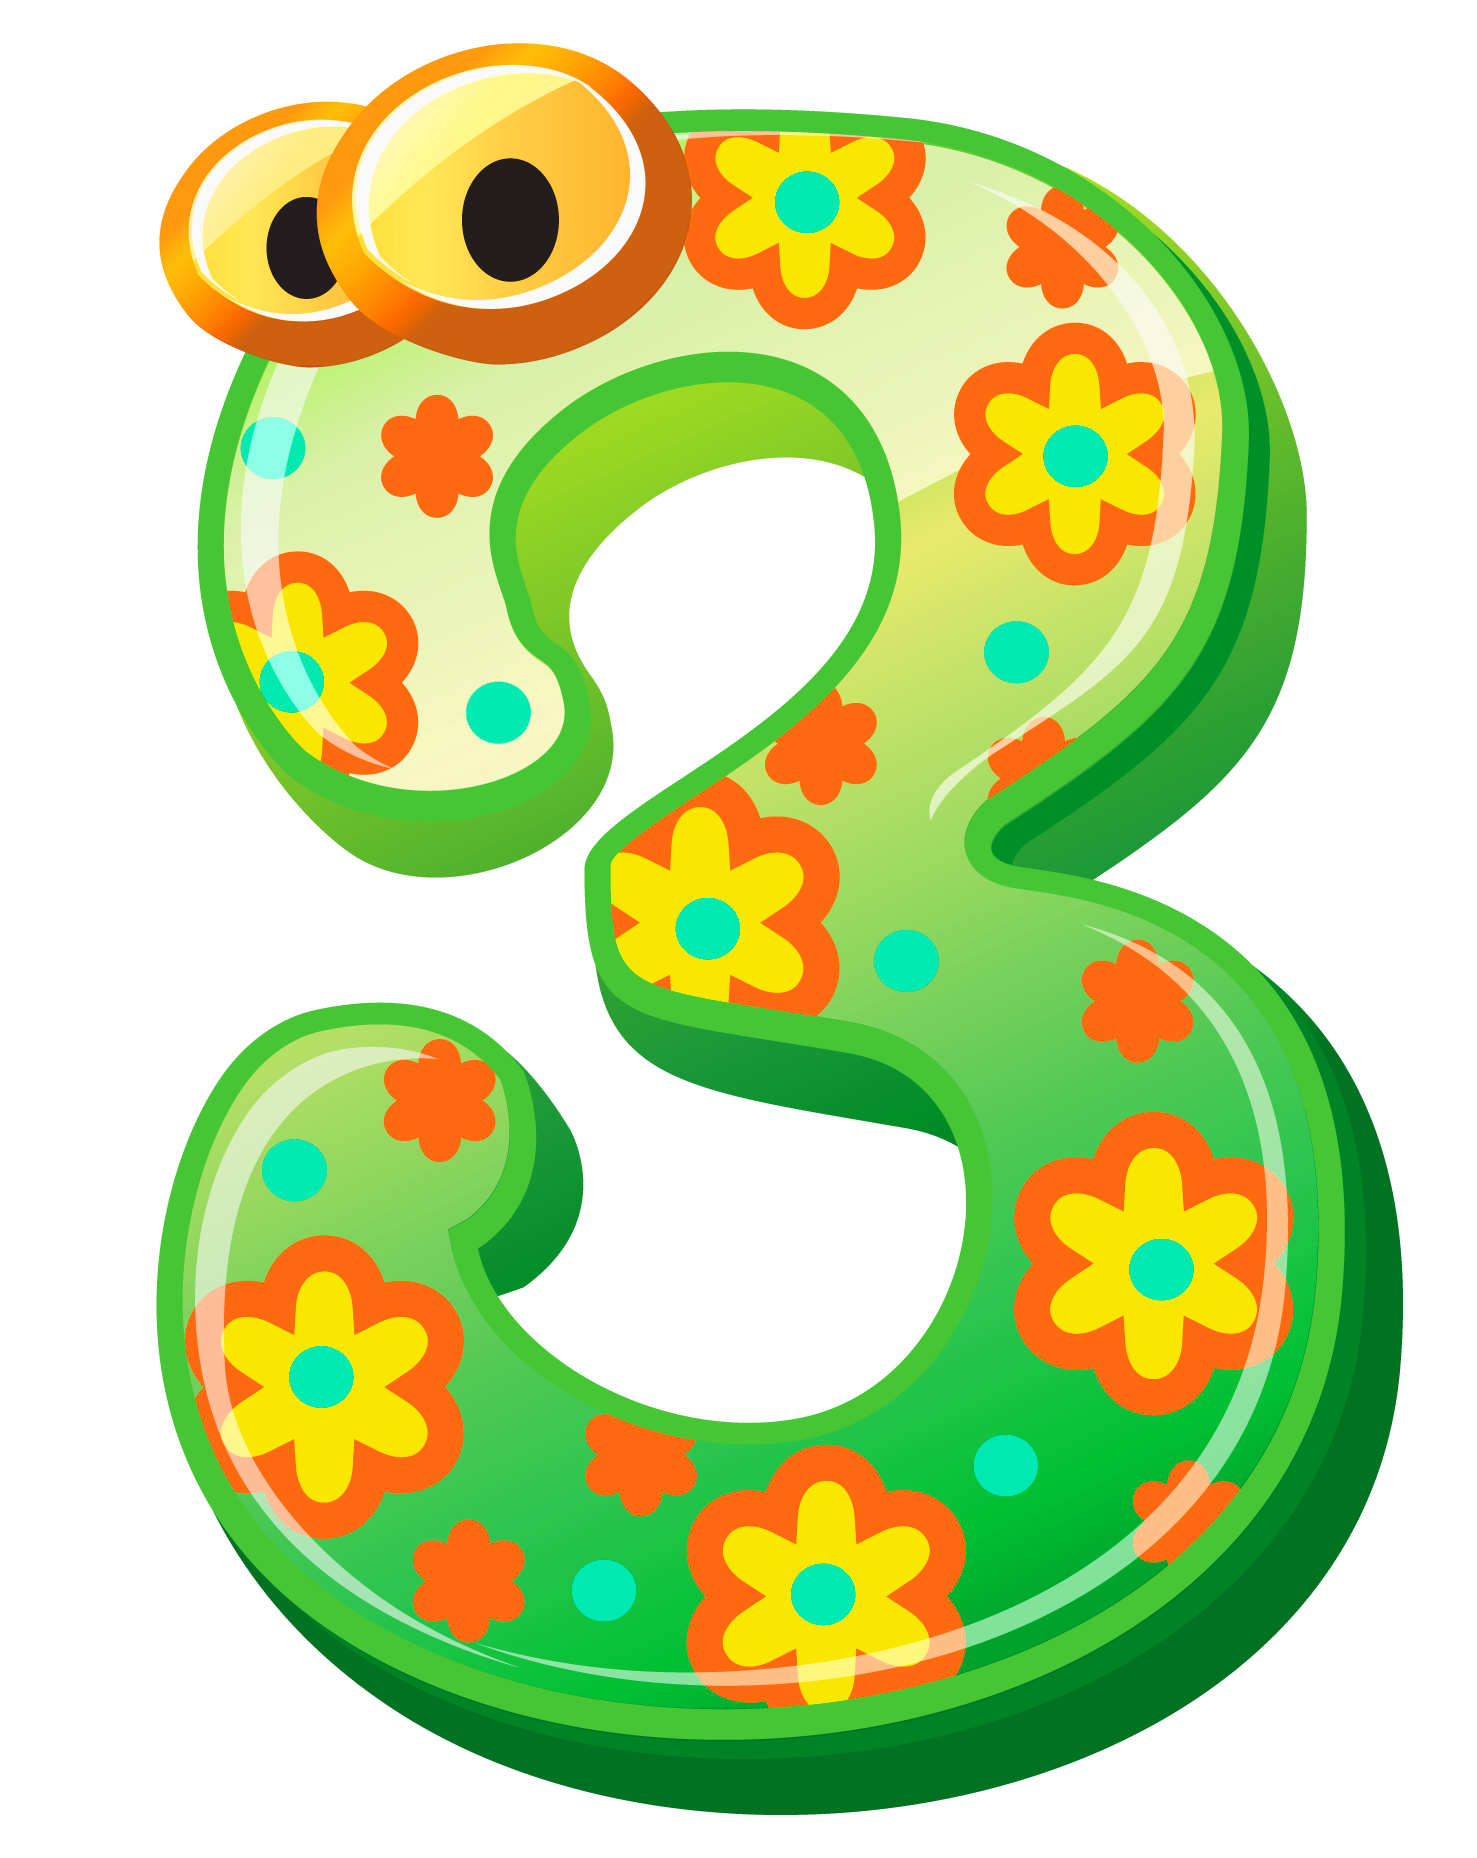 Cute three png image. Clipart teacher number